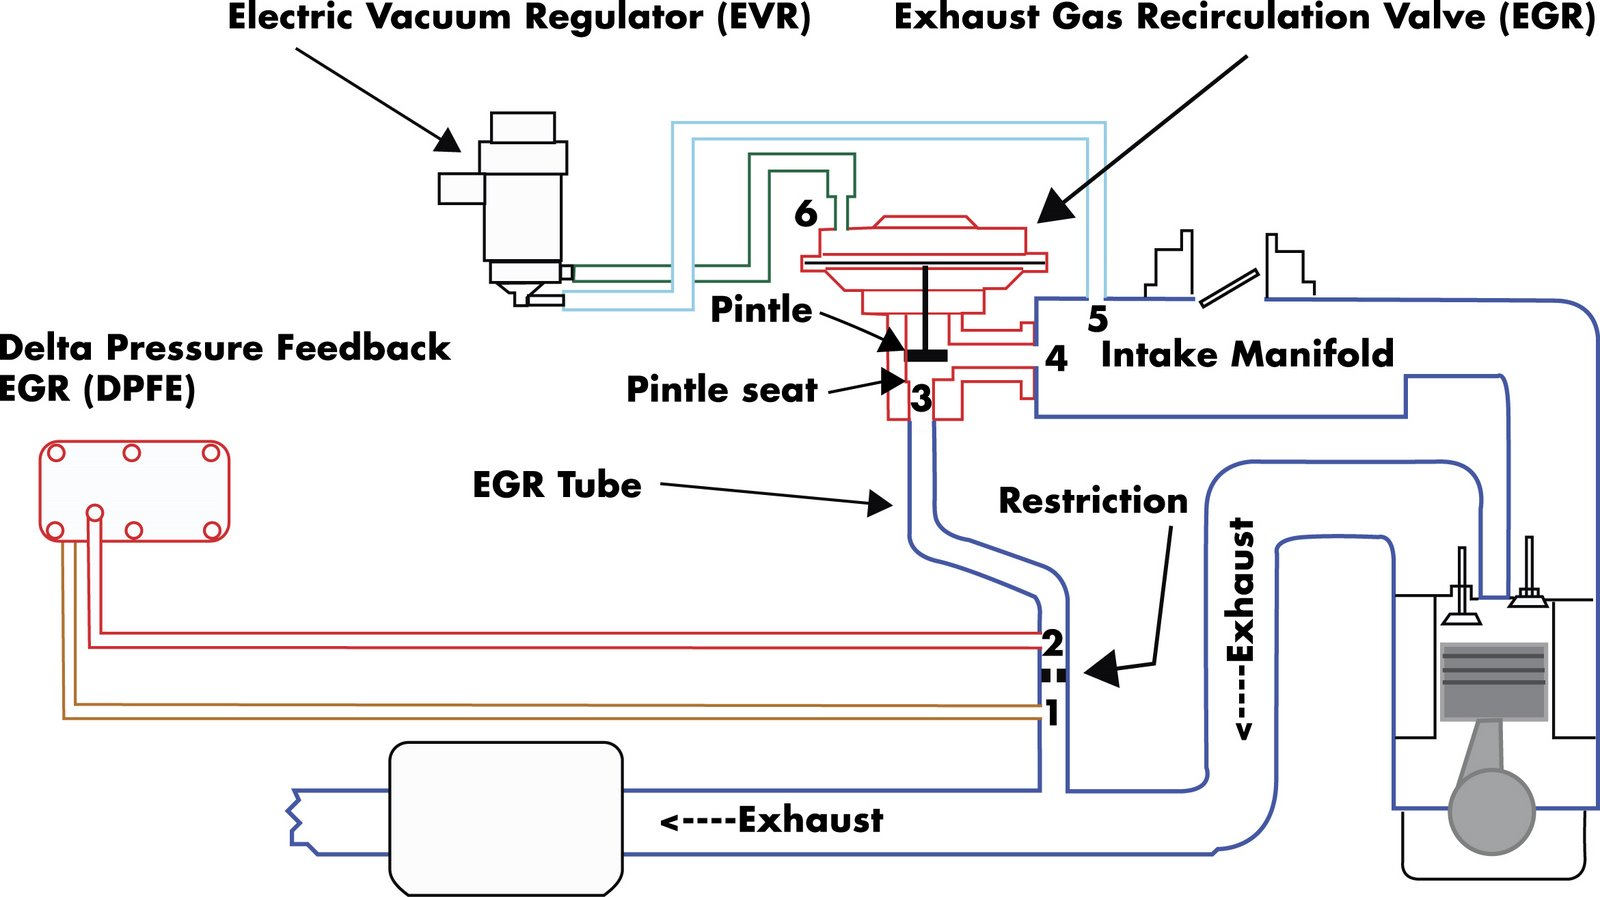 2004 expedition vacuum system diagram 1999 jeep wrangler tj wiring cadillac 4 6l engine 2003 get free image about